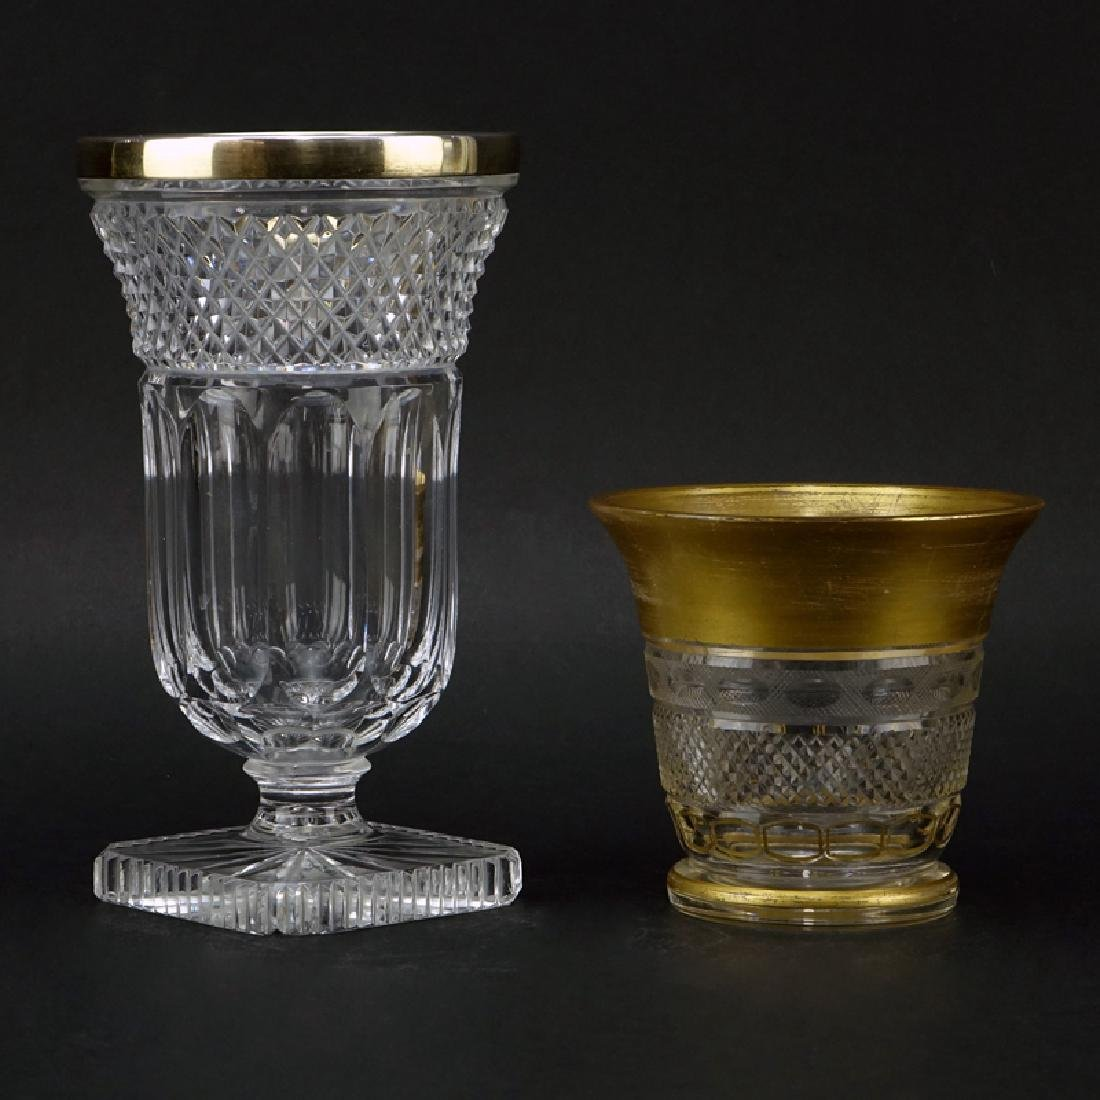 Grouping of Two (2) Vintage or Antique Glass Tableware.